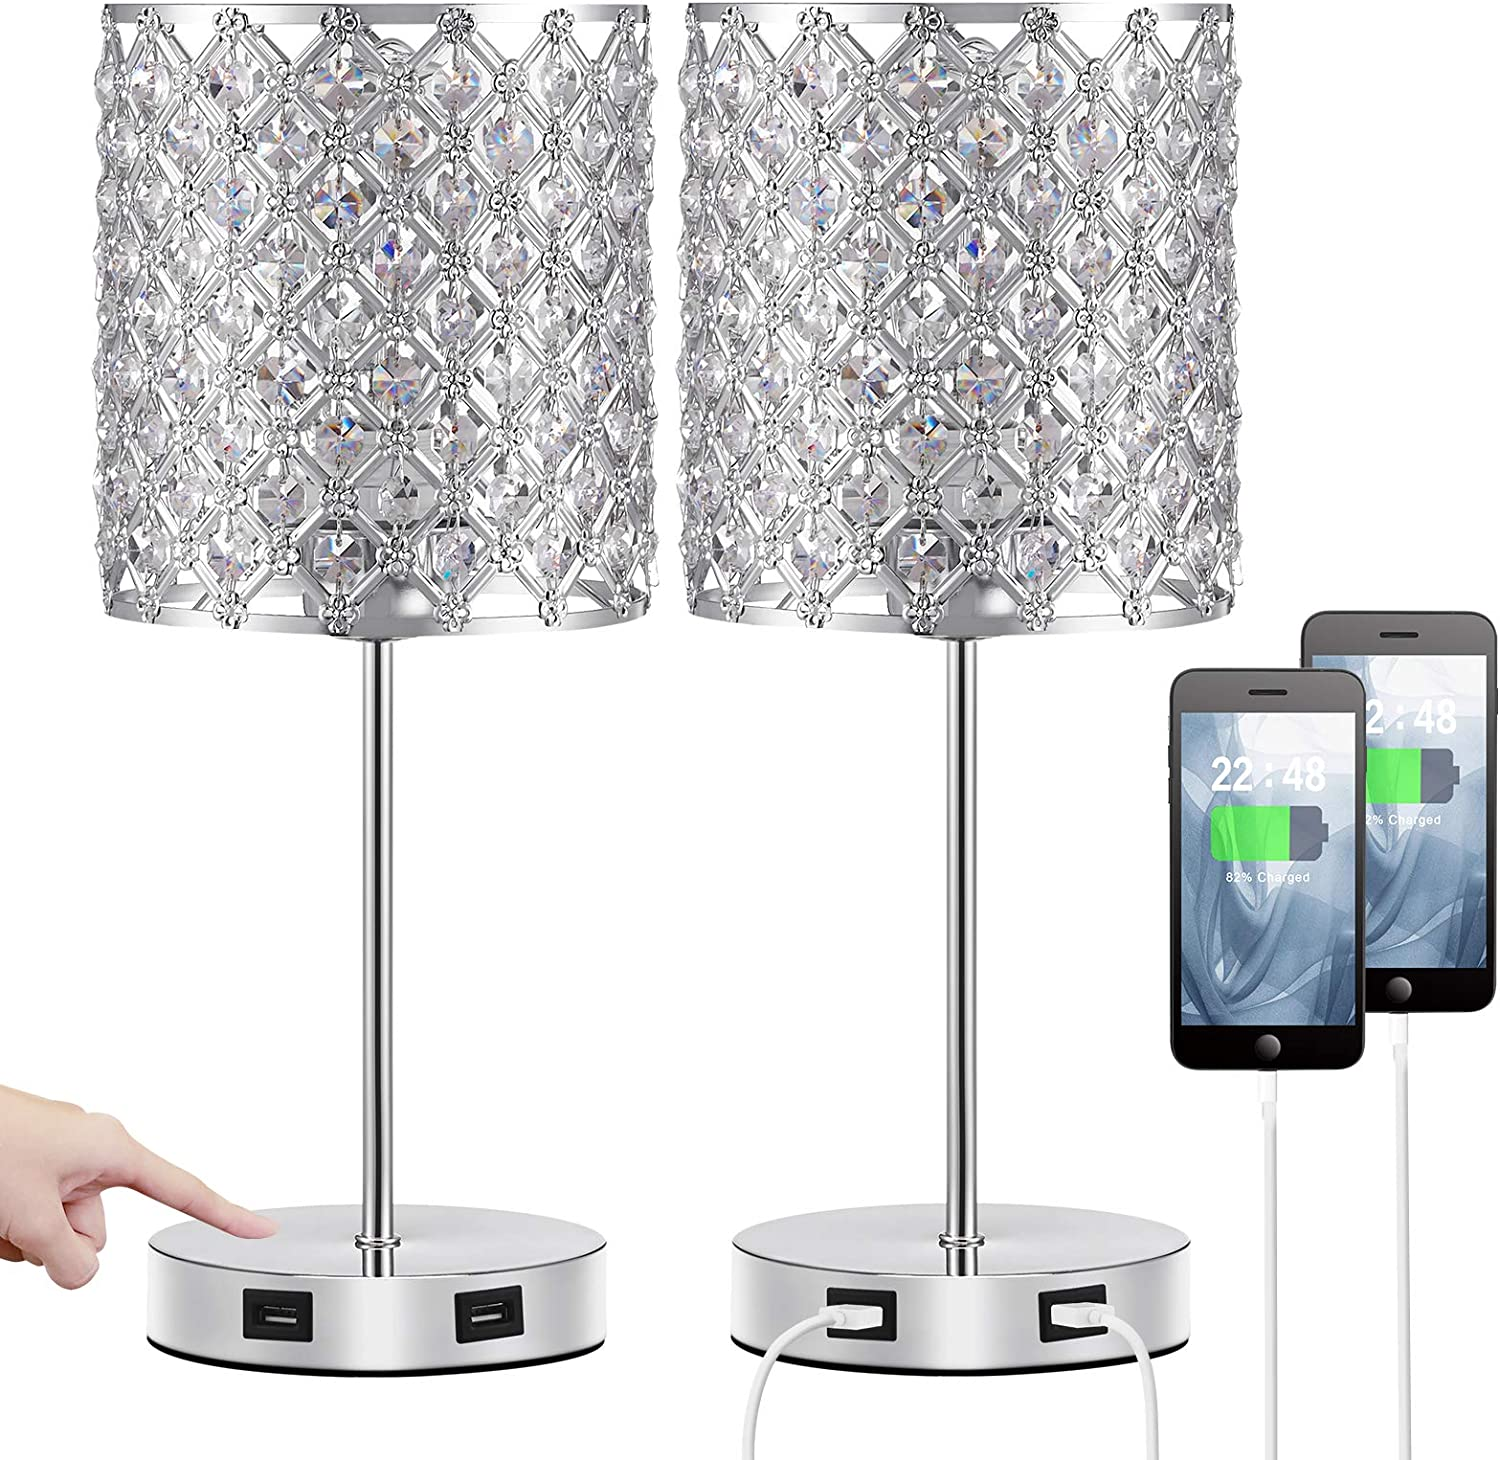 Touch USB Crystal Lamp, Sliver Crystal Lamp Set of 2 with Bulbs, Bedside Lamps with Dual USB Ports and 3 Way Dimmable Touch, Nightstand Lamp Desk Light for Bedroom Living Room(Included Bulbs&2 Packs)